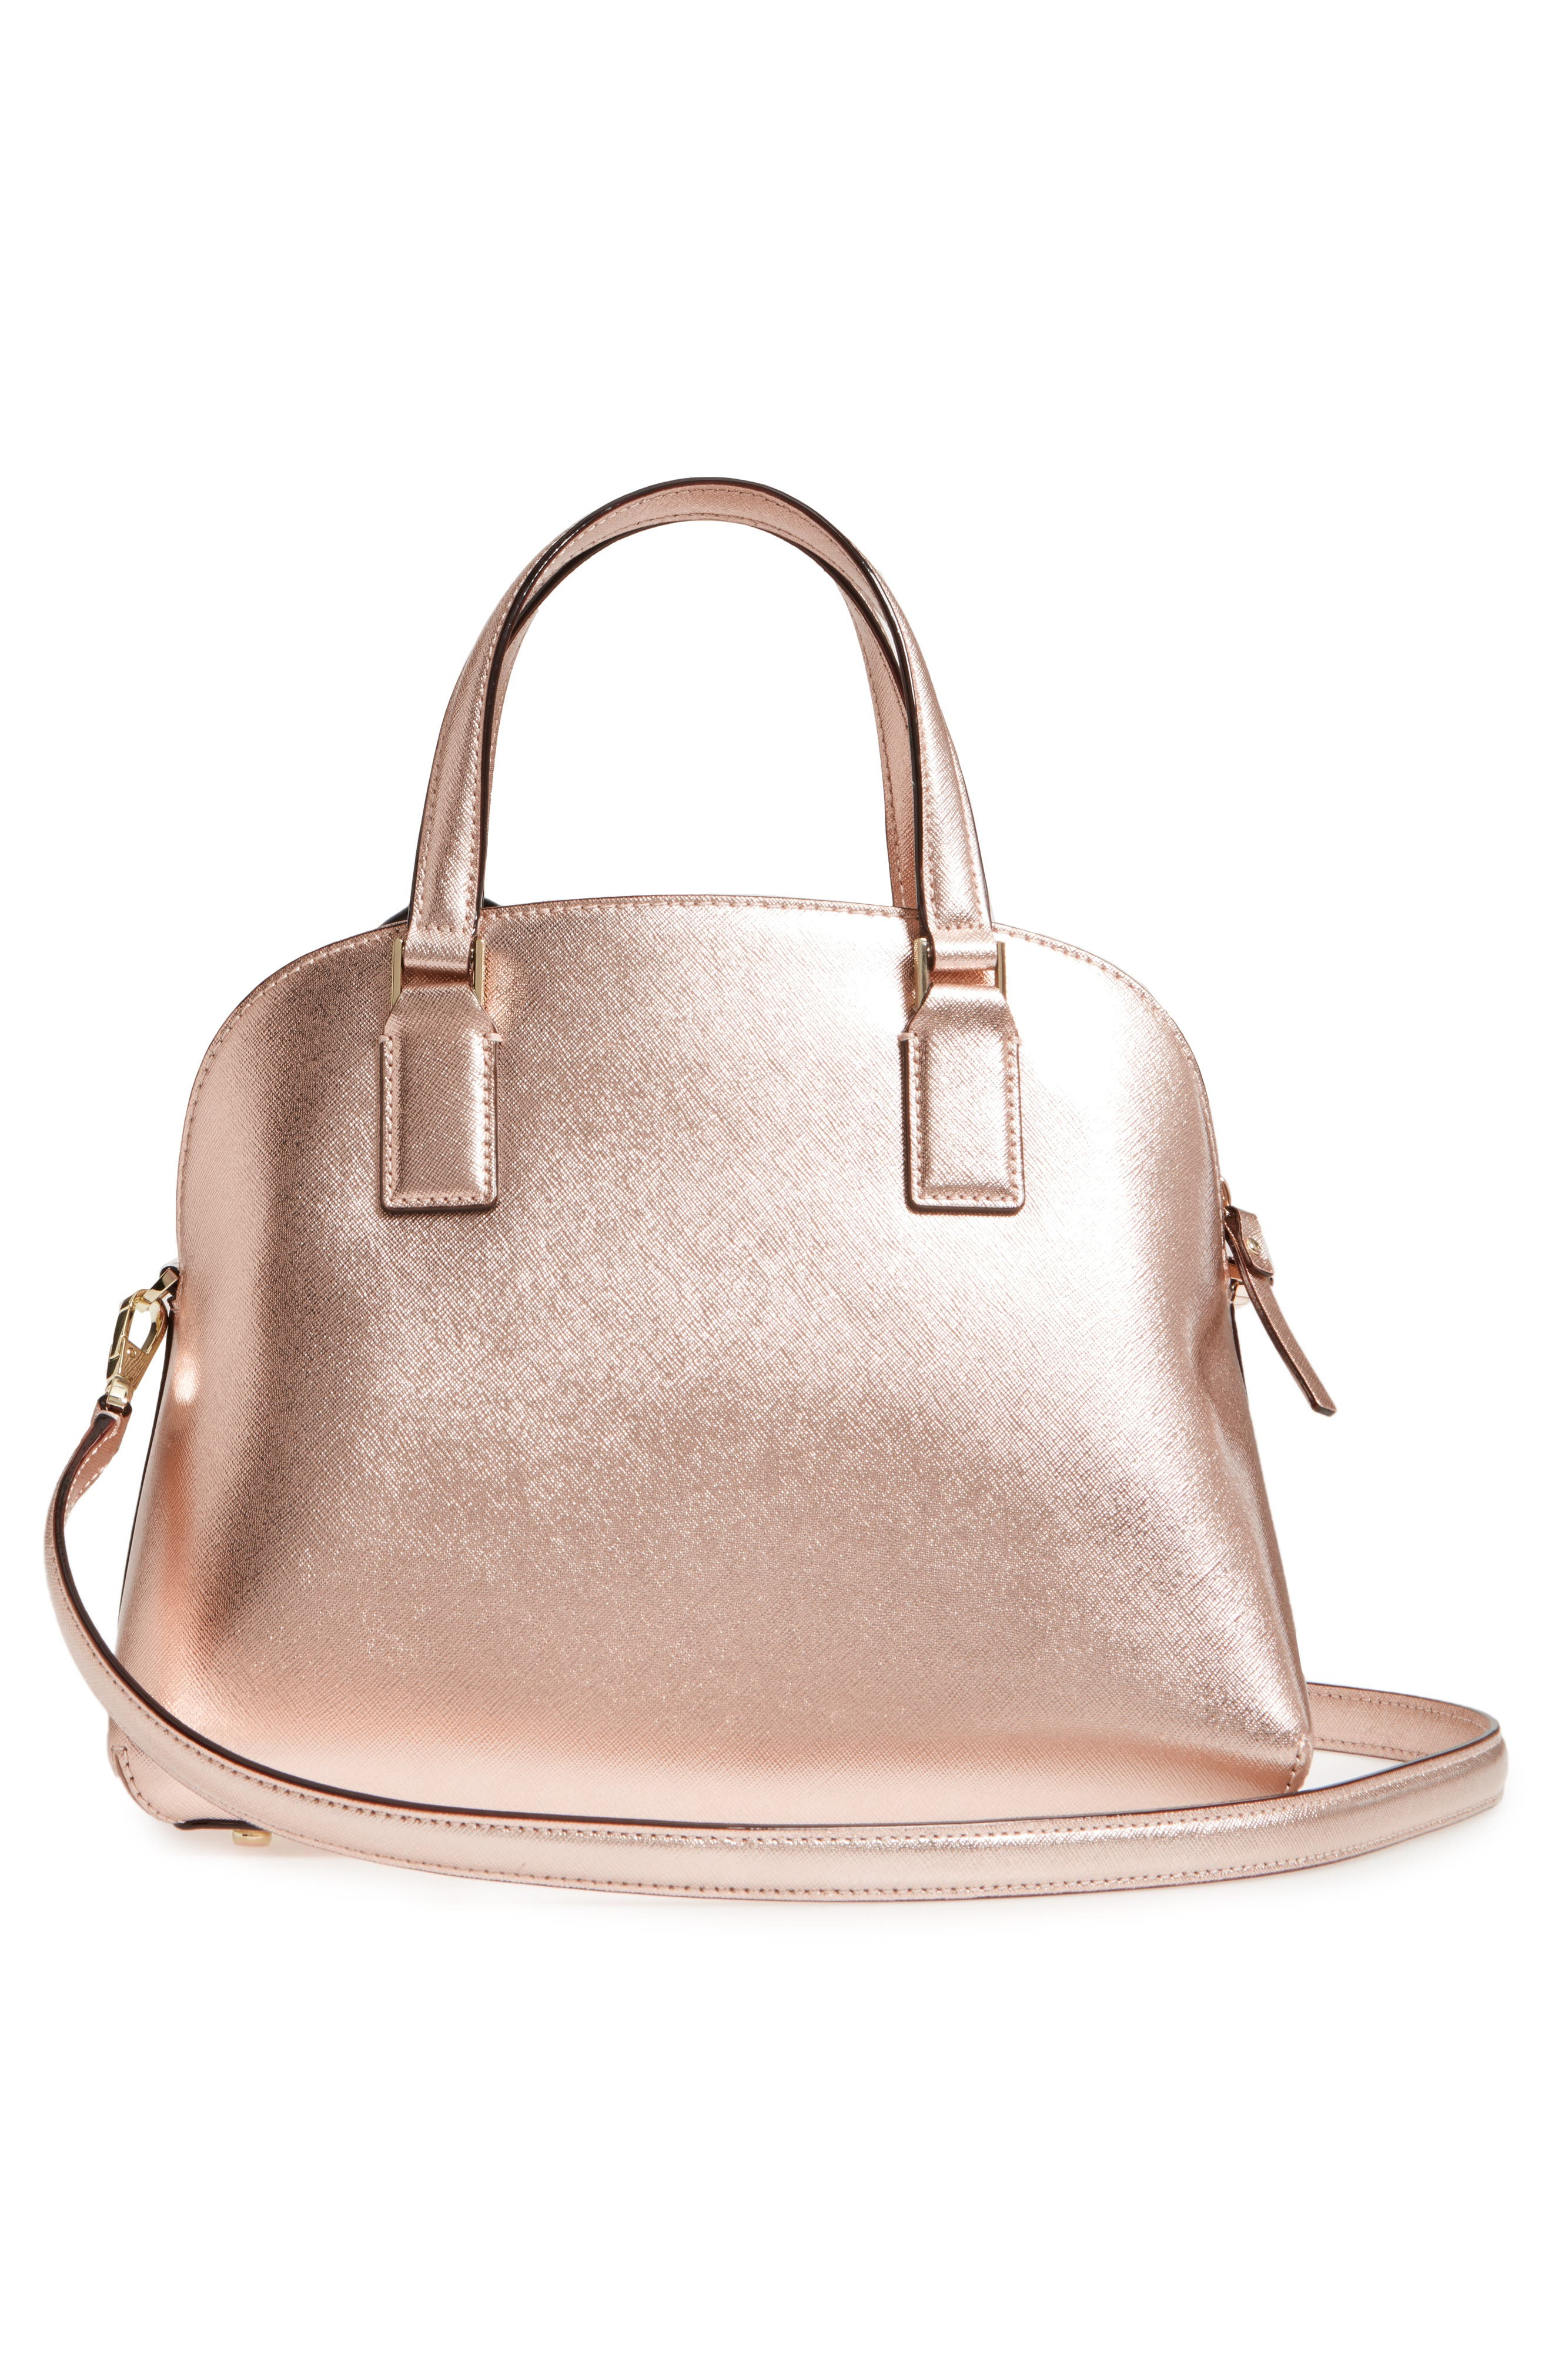 cameron street - lottie leather satchel,                             Alternate thumbnail 3, color,                             Rose Gold